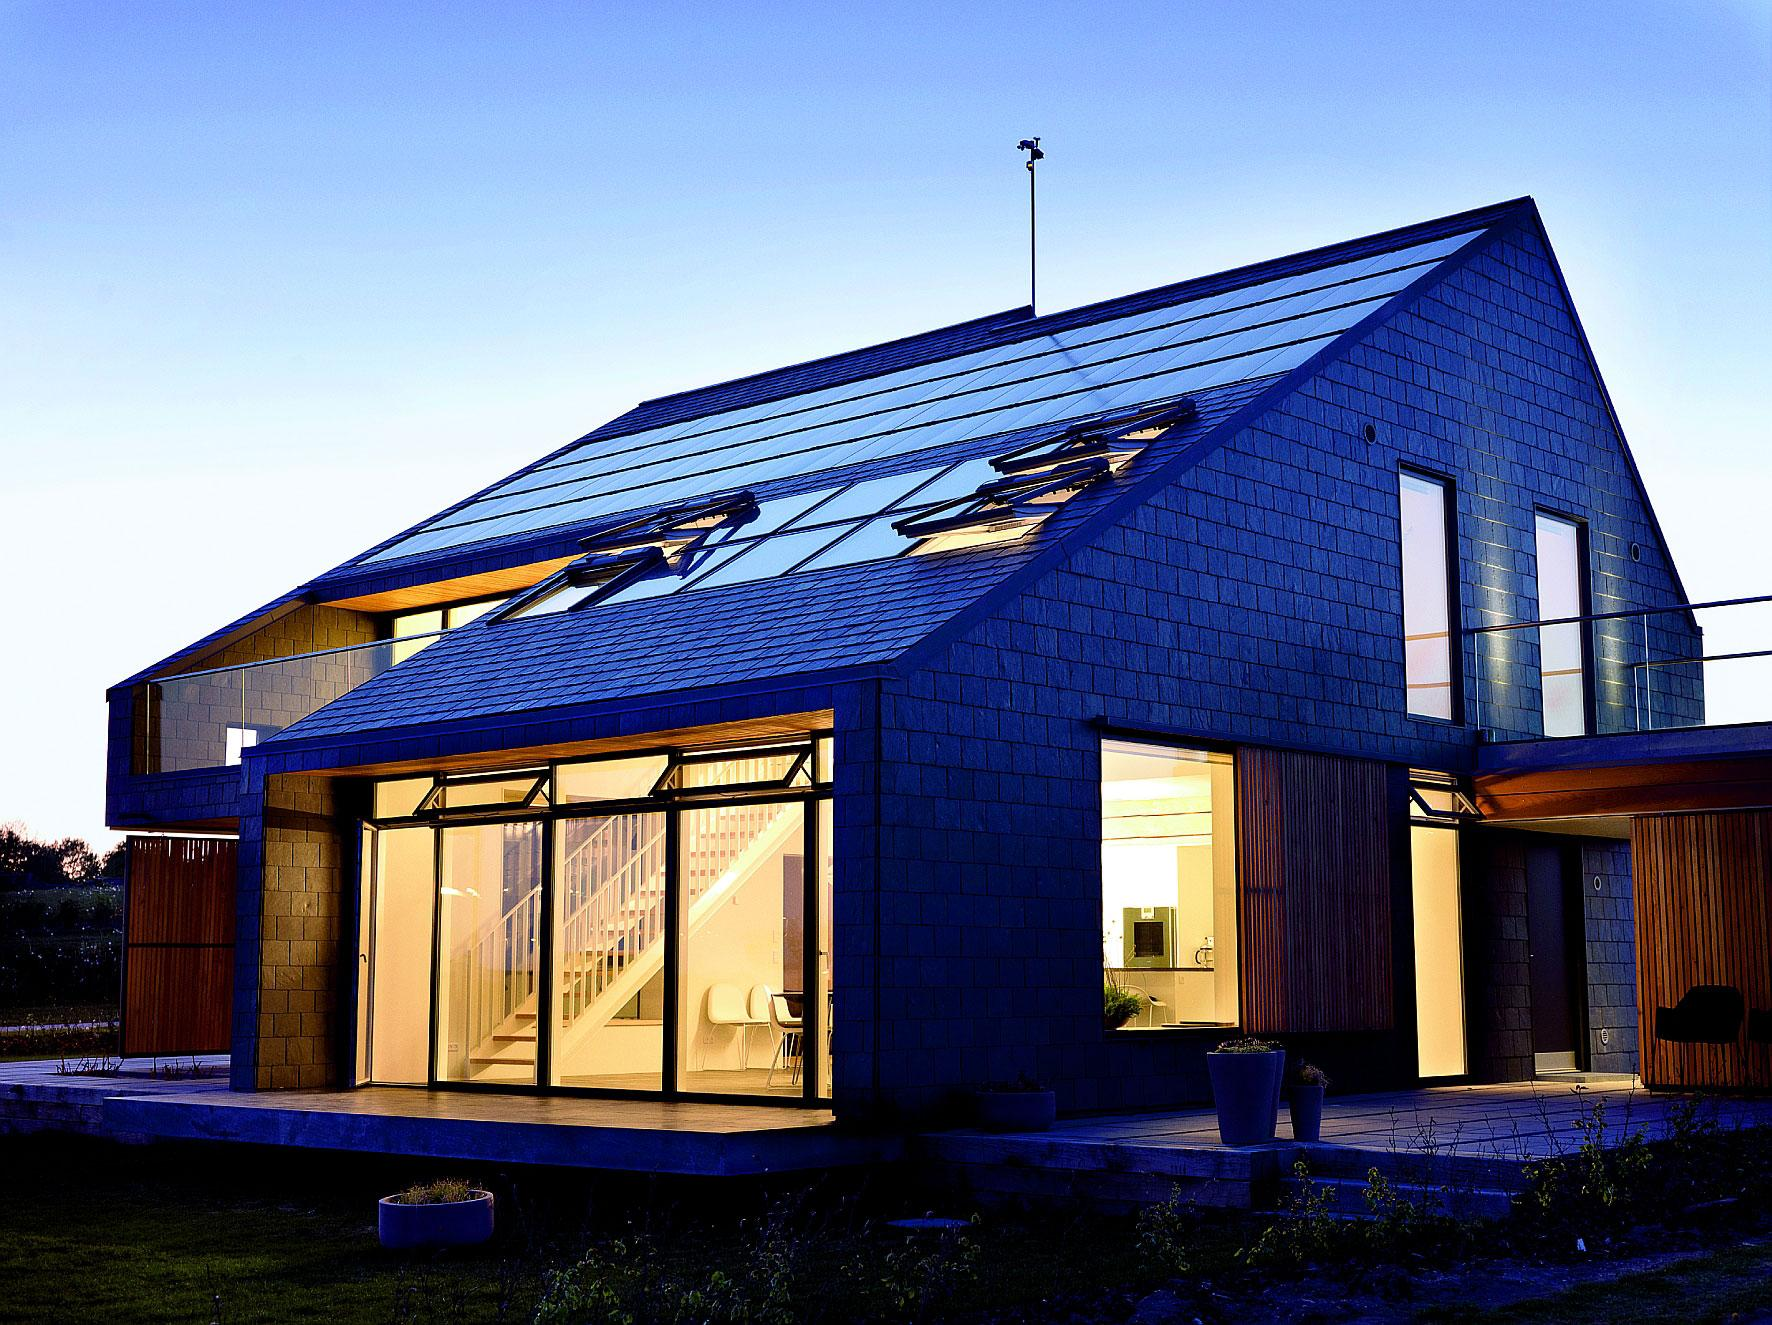 energy efficient bathroom idea with Energy Efficient Home A House In Aarhus Denmark on Don Holmes Custom Homes Cost Saving Features in addition Energy Efficient Home A House In Aarhus Denmark moreover Stylish Bathroom Fixtures For The Modern Homeowner in addition 101 Home Improvements To Increase The Value Of Your Home moreover Designer Bathrooms 2.